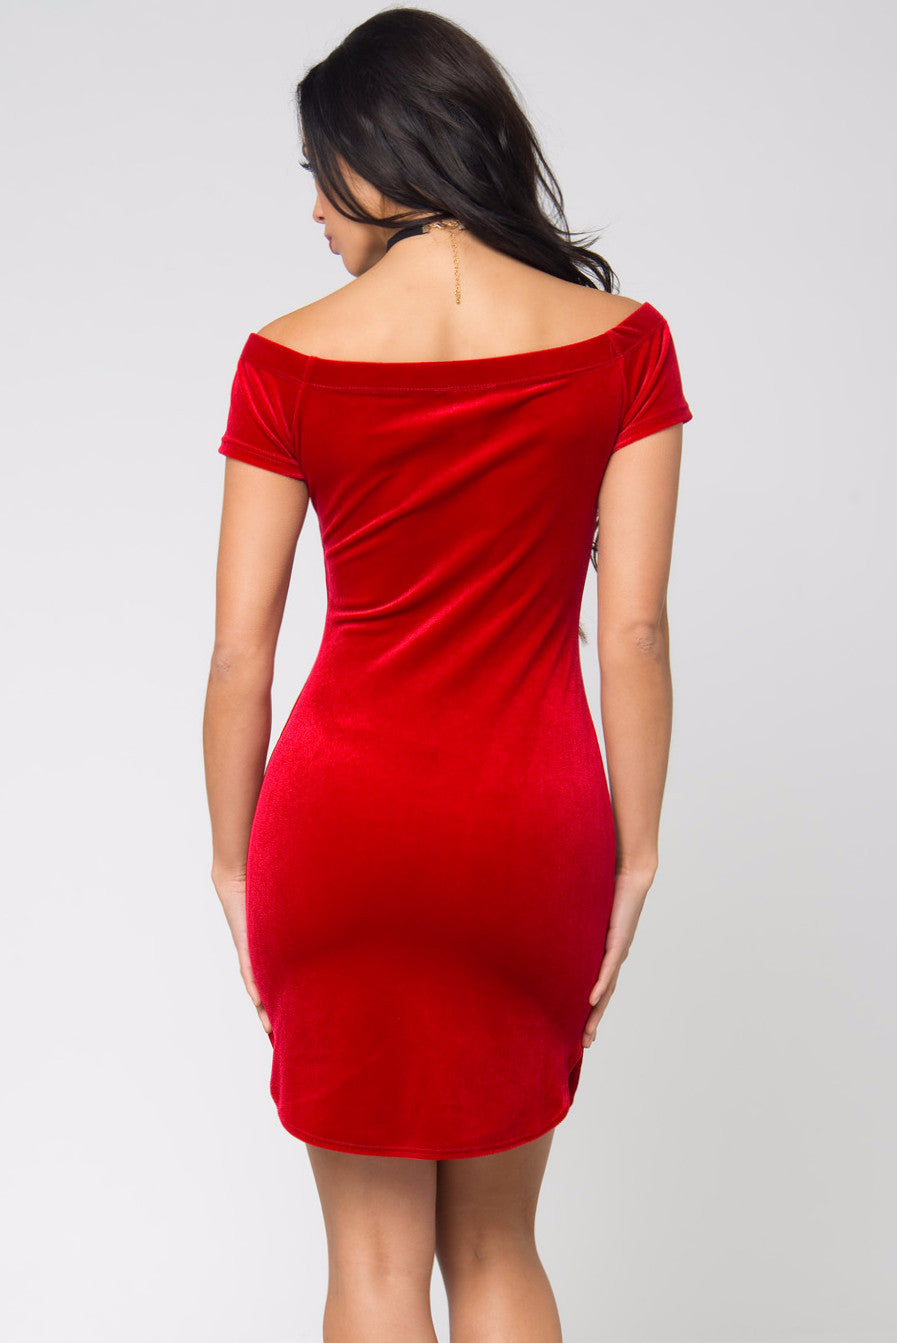 Noellia Red Velvet Dress - Fashion Effect Store  - 2